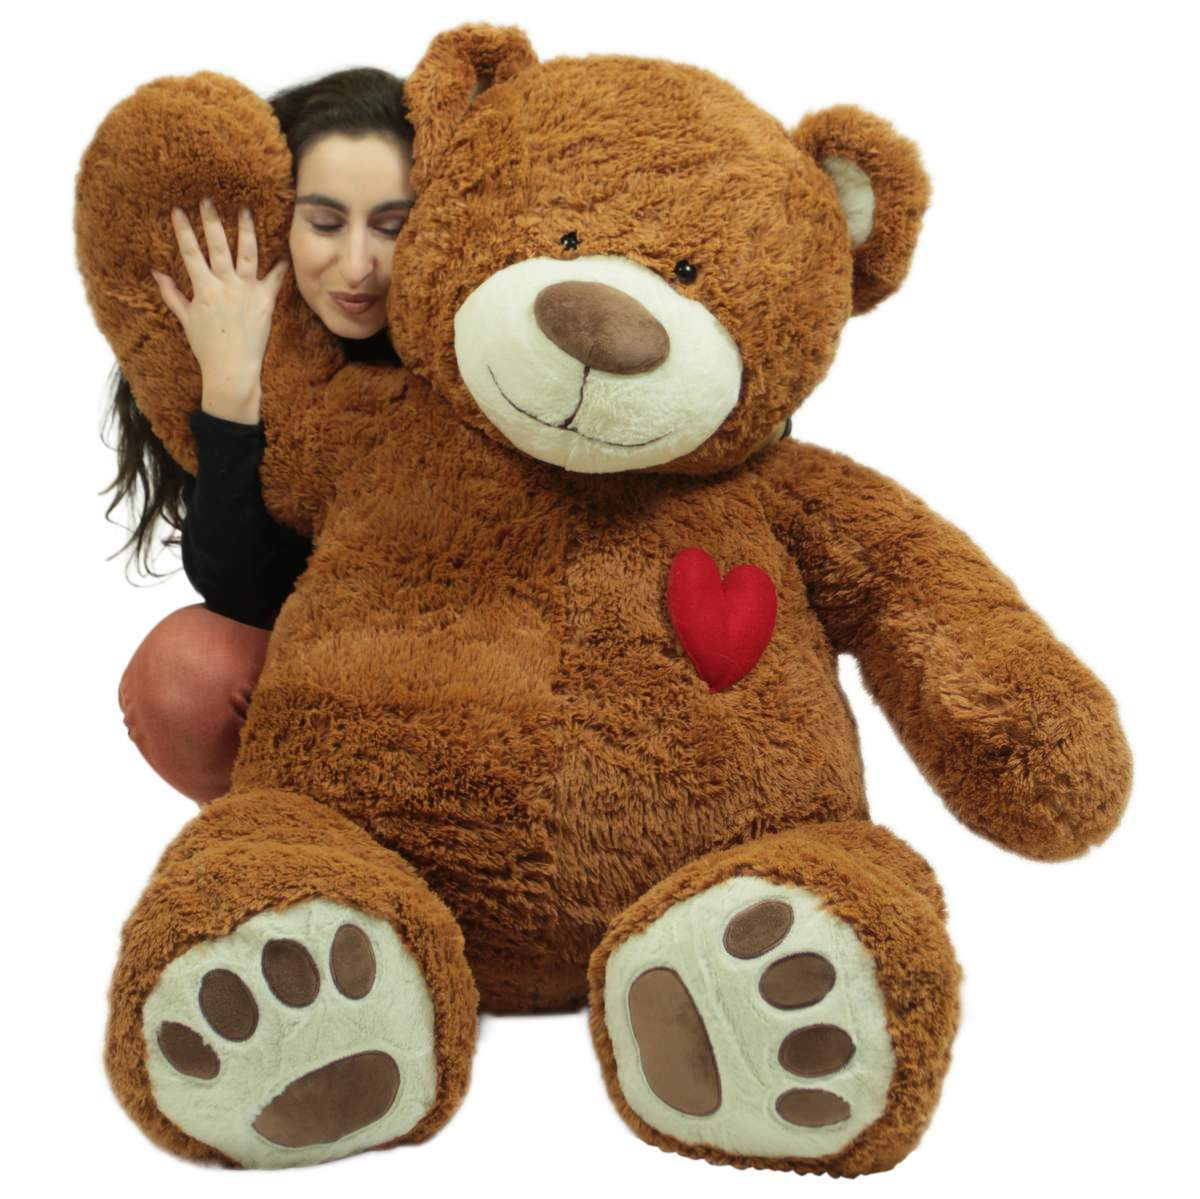 Big Plush Giant 5 Foot Teddy Bear with Heart on Chest, Honey Brown Color, Huge Plushie Gift of Love by Big Plush